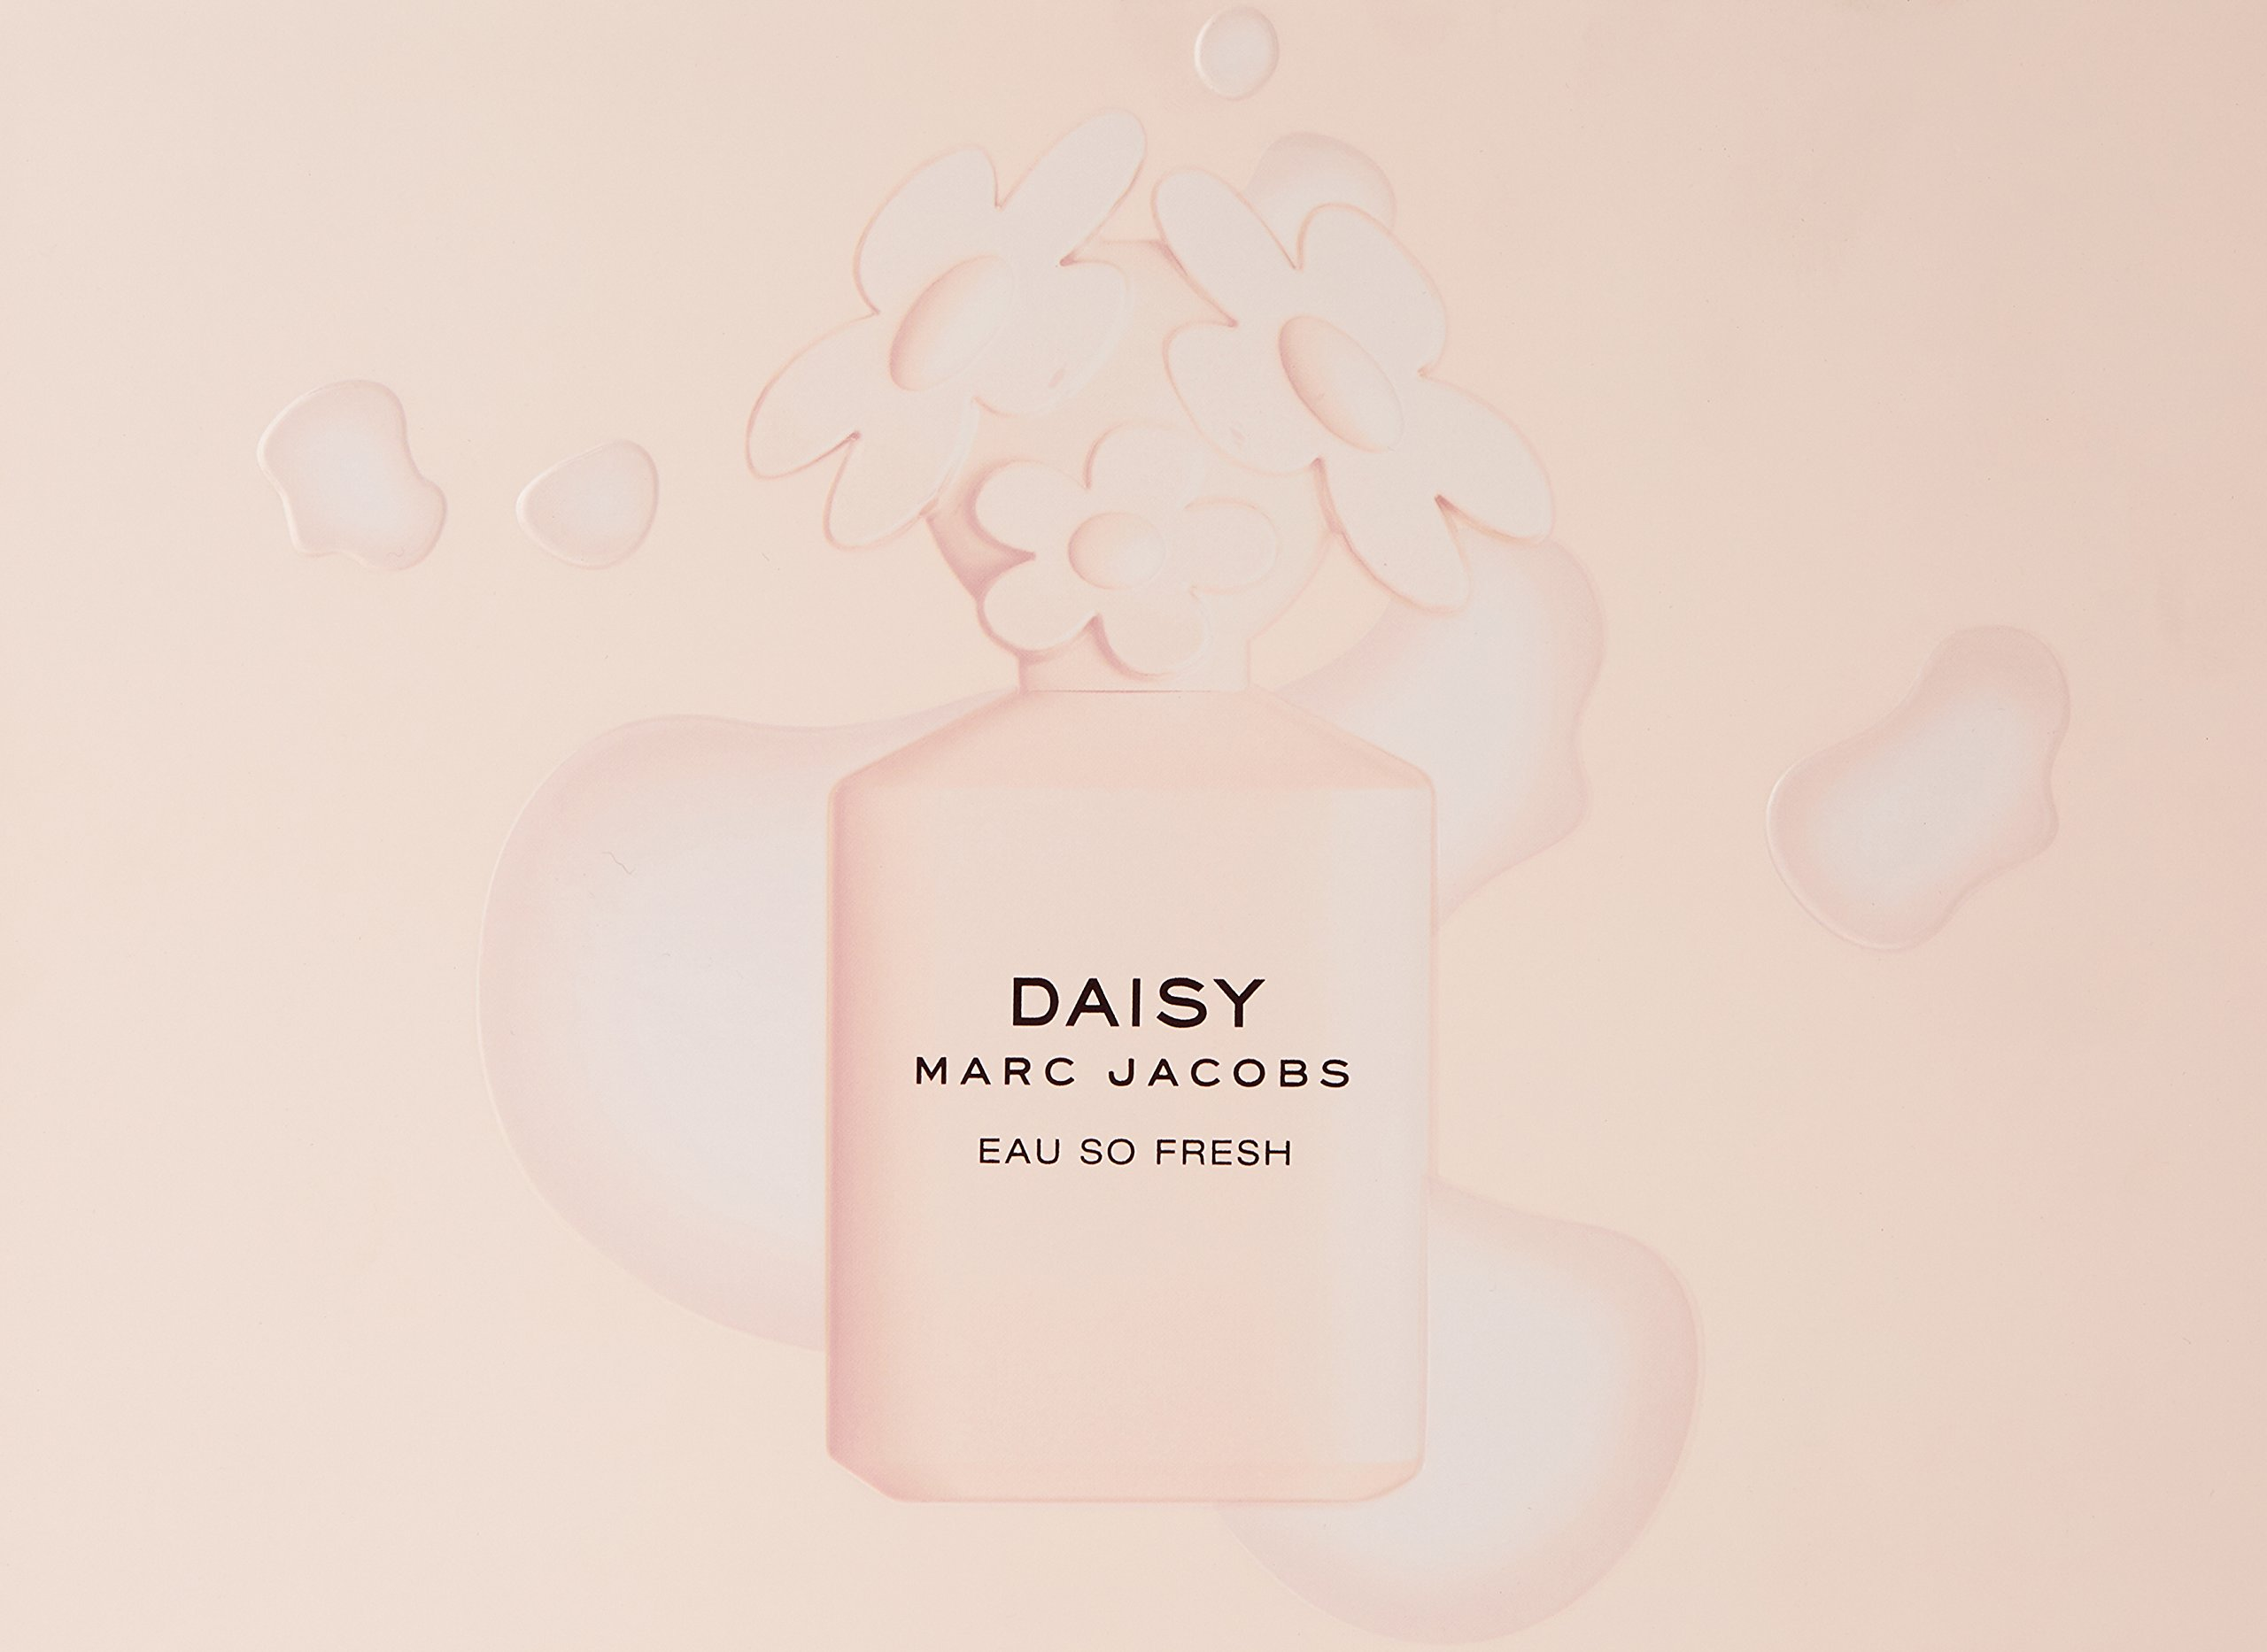 Marc Jacobs Daisy So Fresh 3 Piece Gift Set for Women by Marc Jacobs (Image #2)